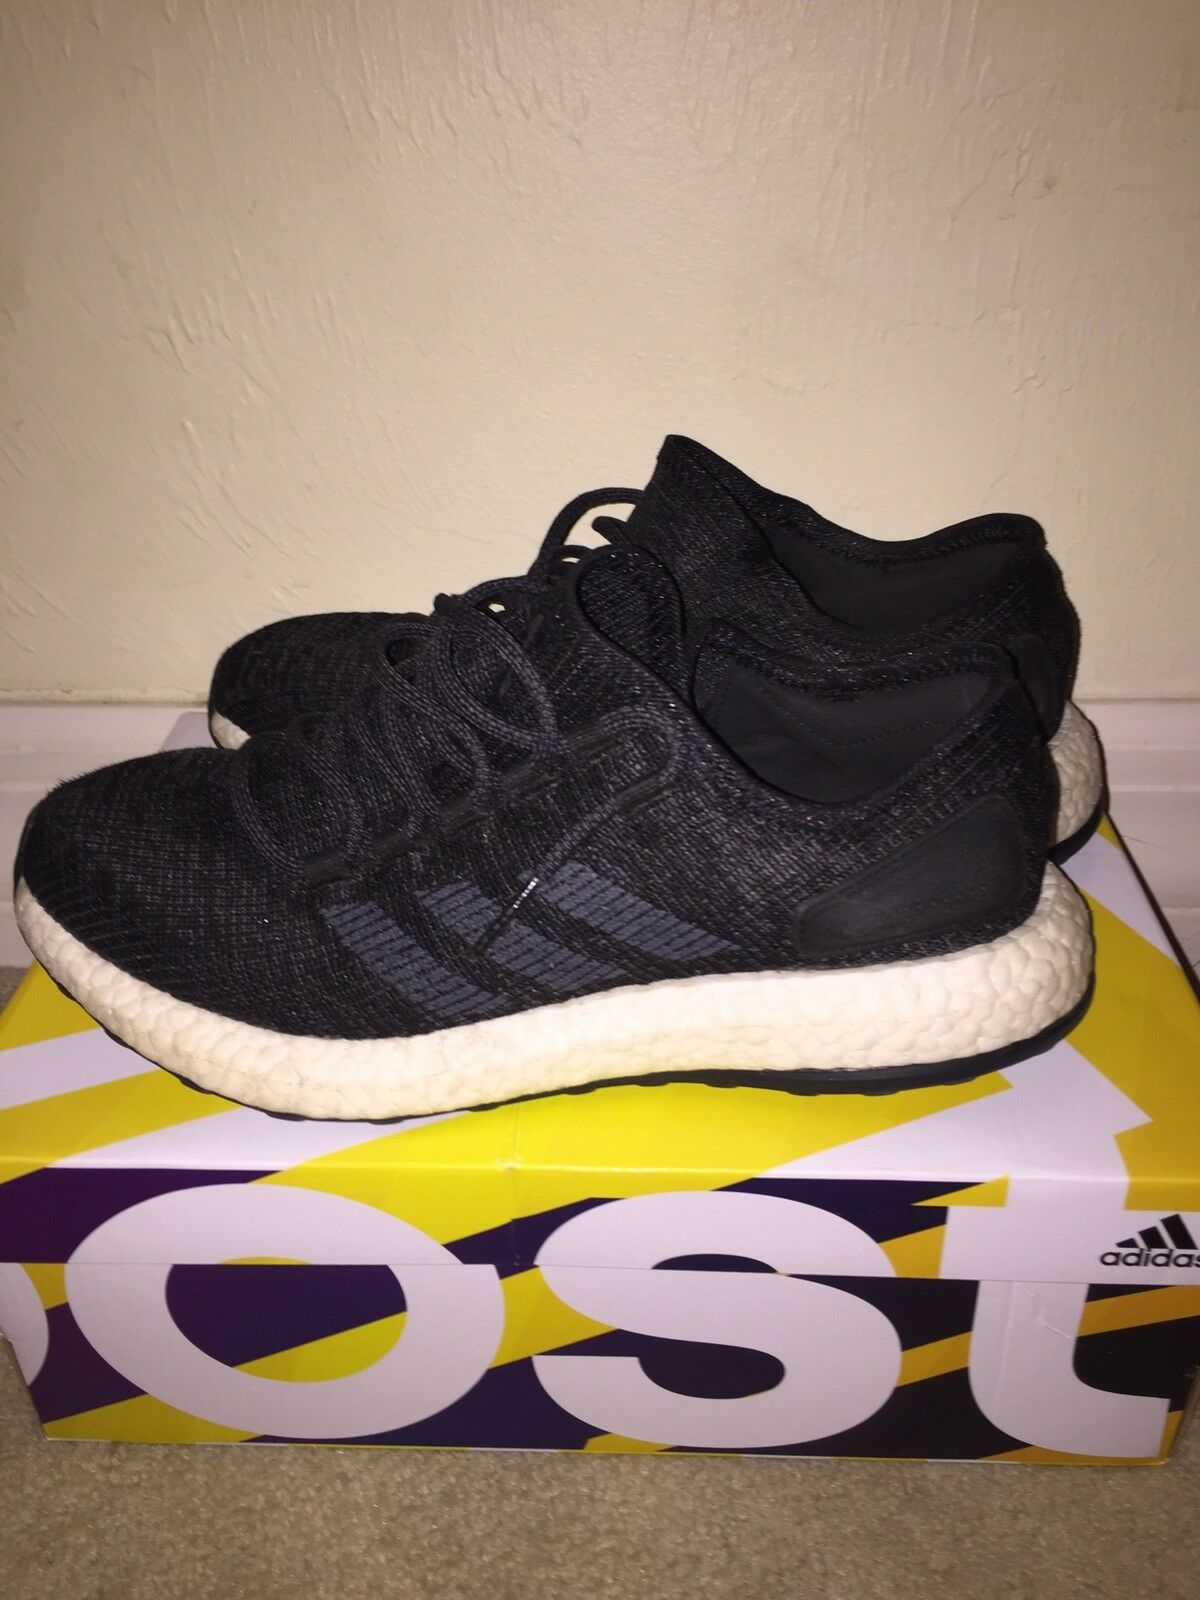 Adidas Pure Boost 2018 Mens Size 8.5 BA8899 Black